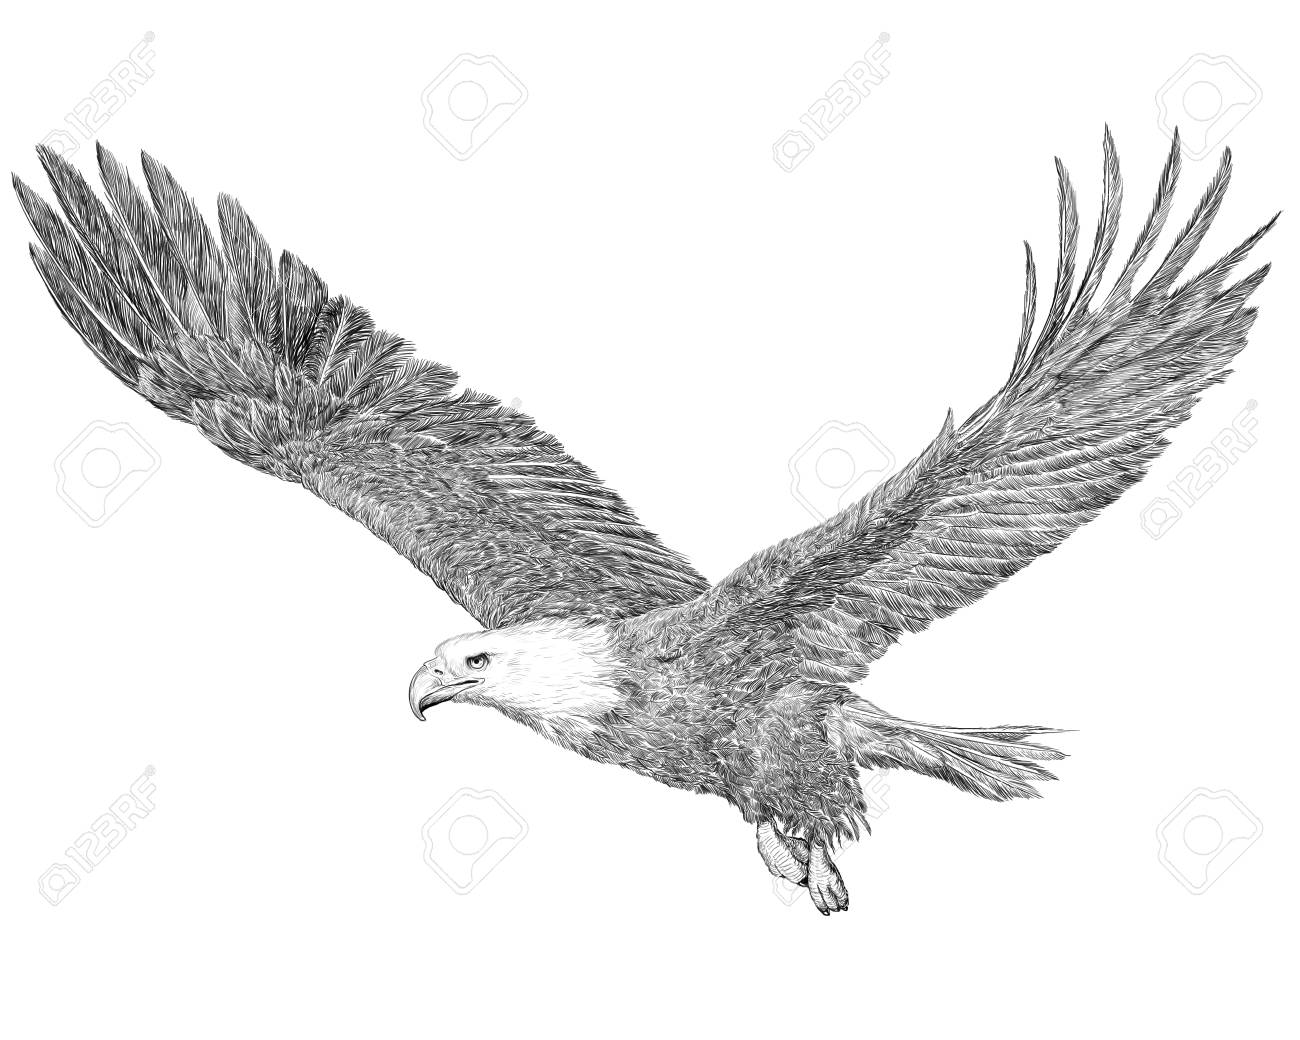 Bald eagle flying hand draw sketch black line on white background illustration stock illustration